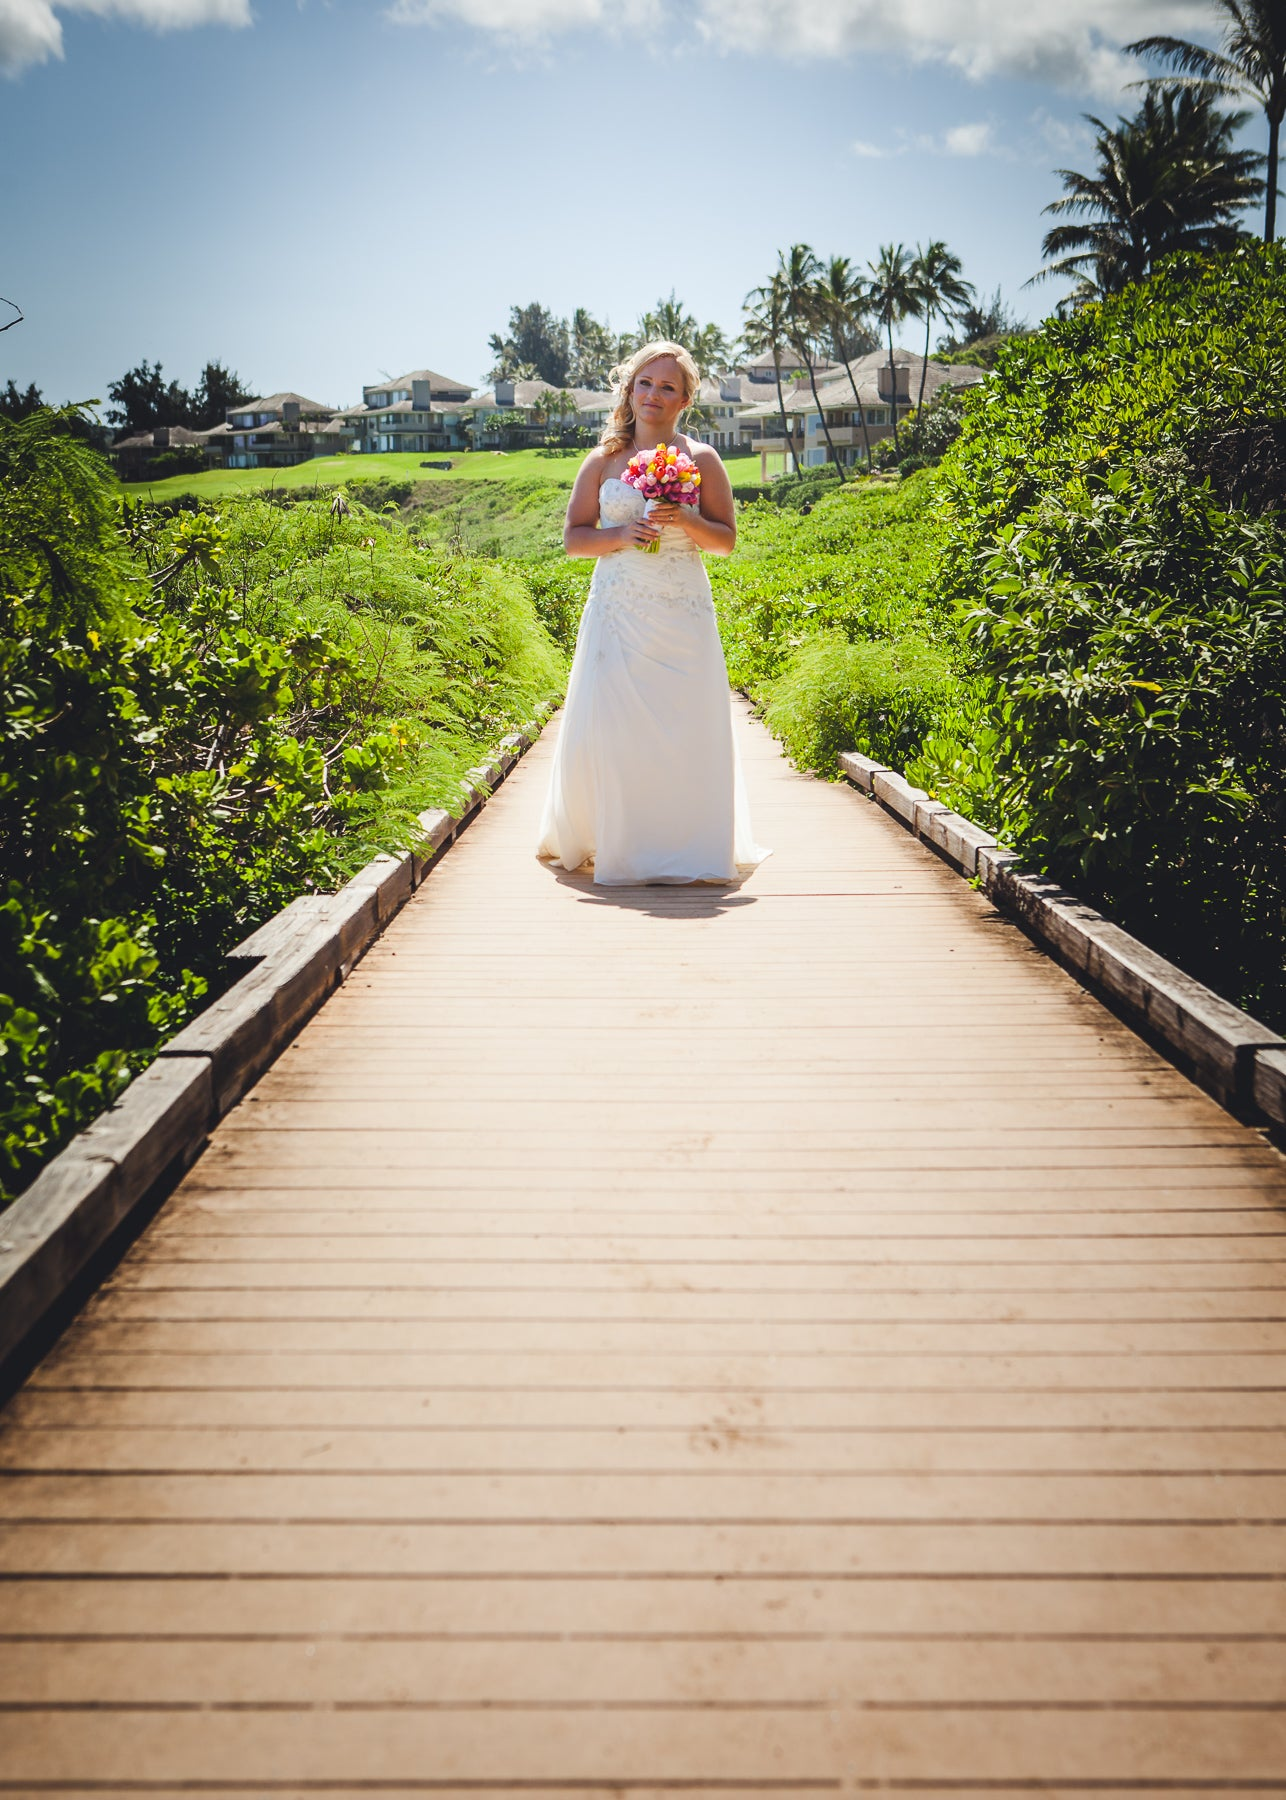 Brides walks along walkway in Maui, Hawaii